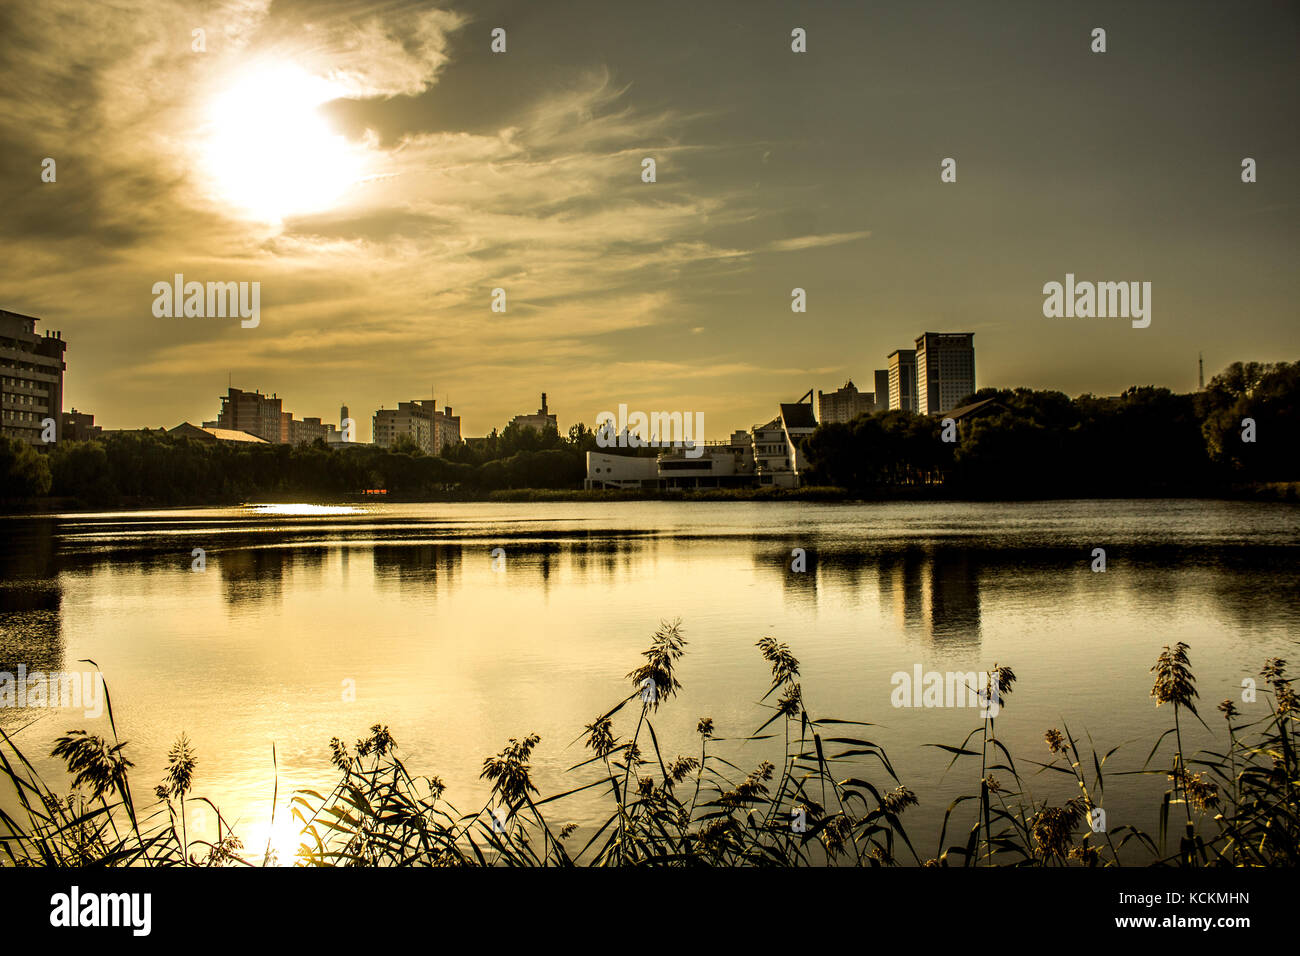 Photography Nature Background Hd Stock Photos Photography